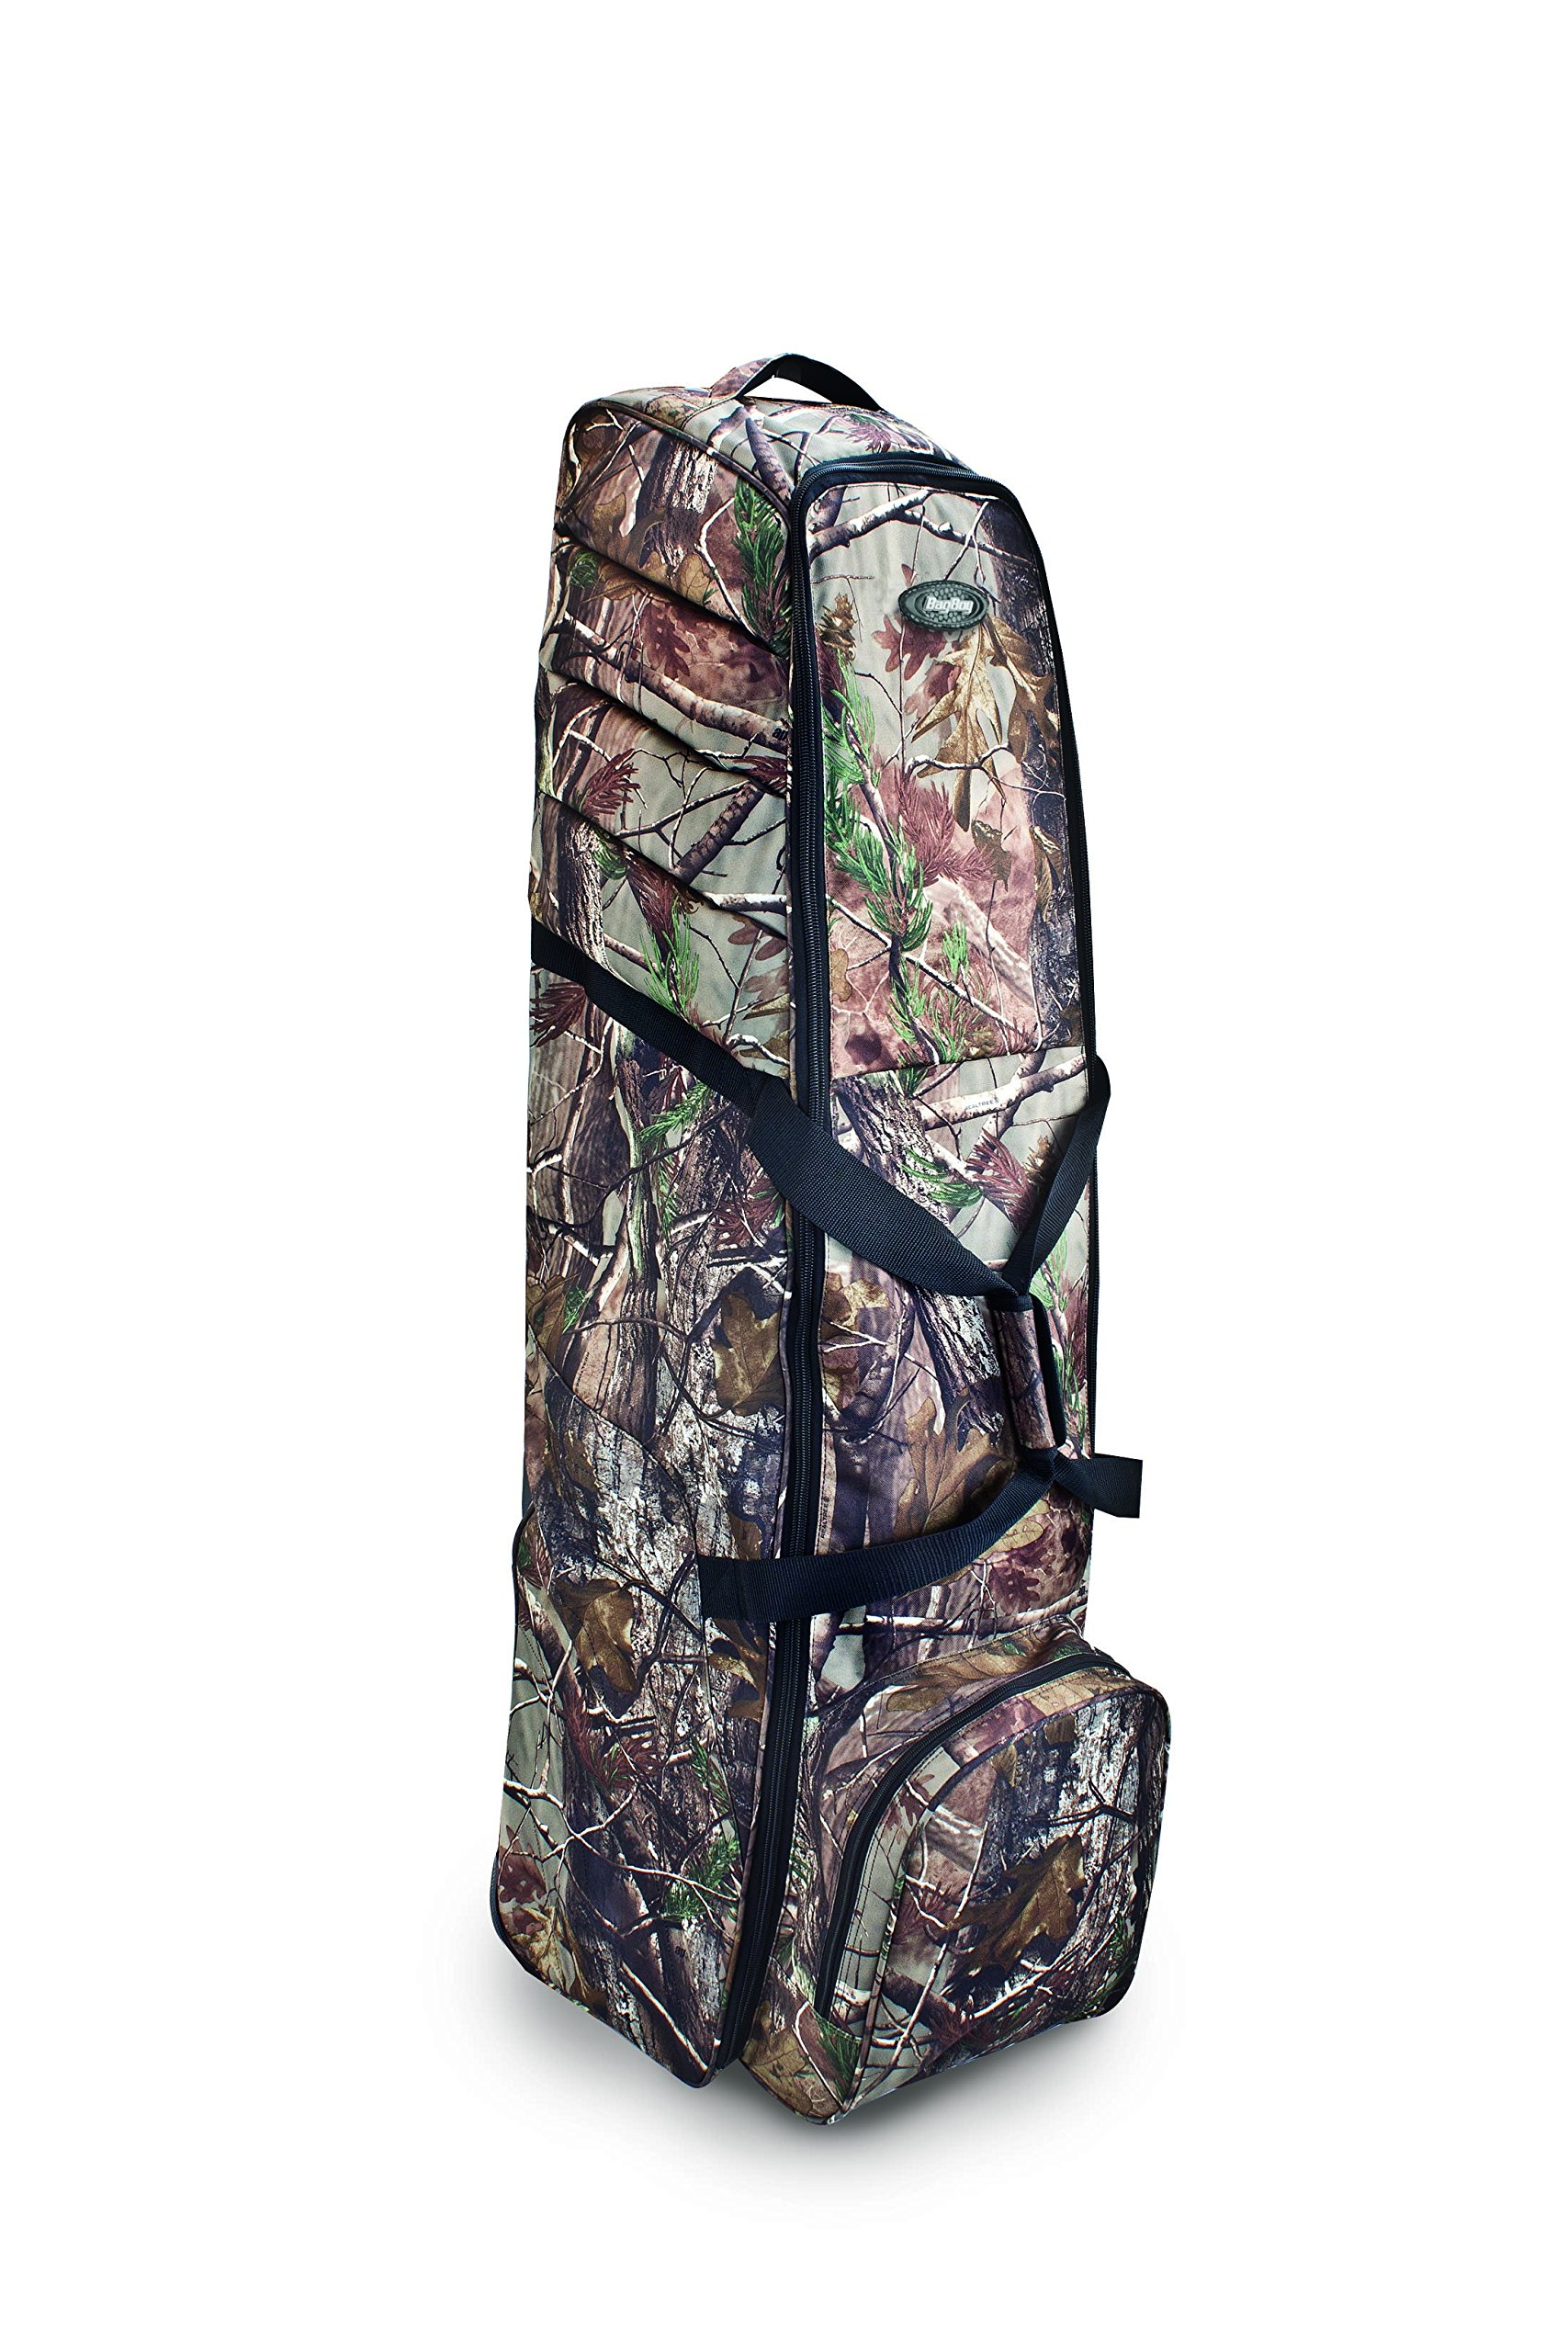 Bag Boy T-700 Travel Cover, Real Tree Camo